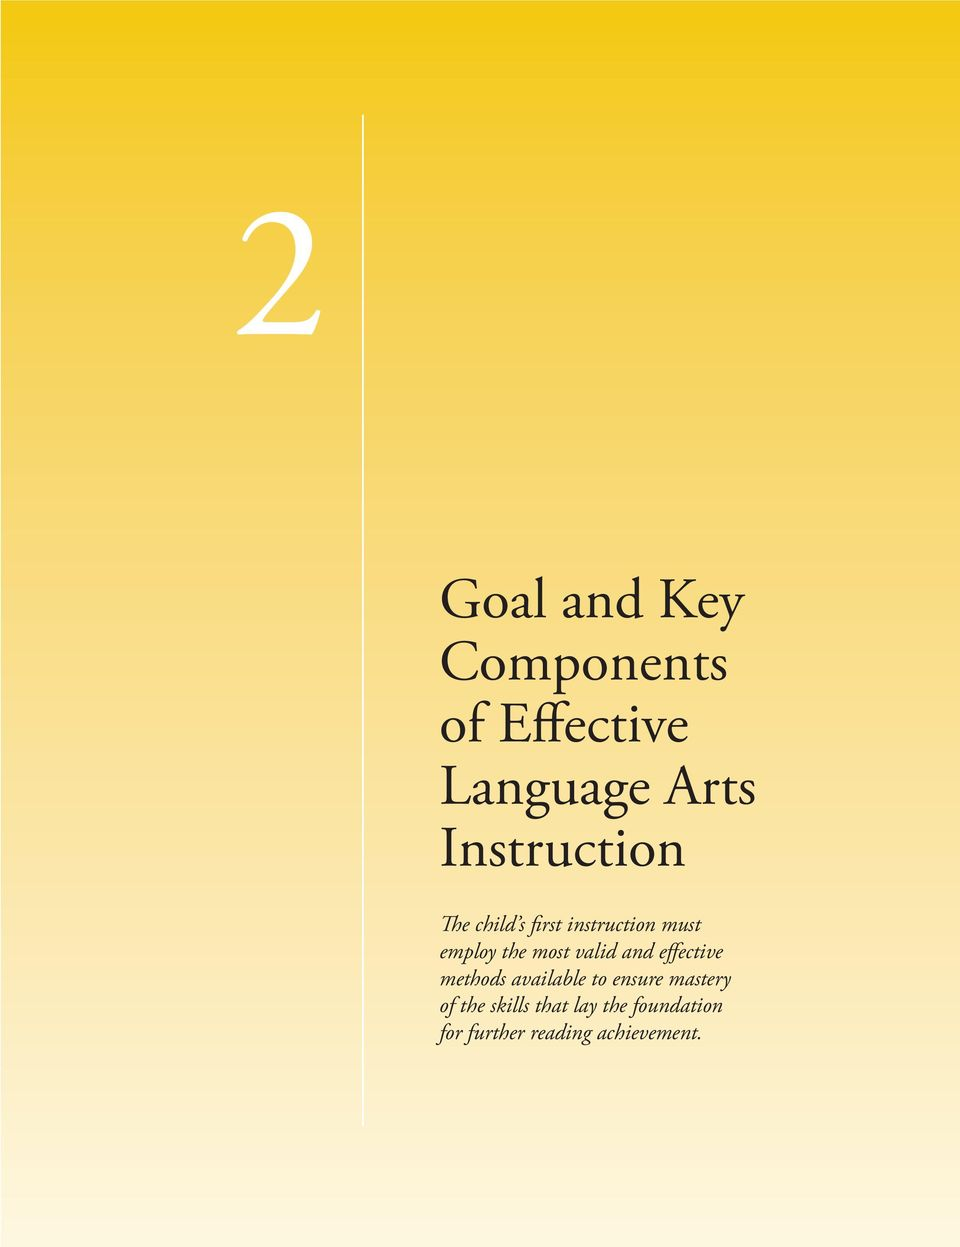 first instruction must employ the most valid and effective methods available to